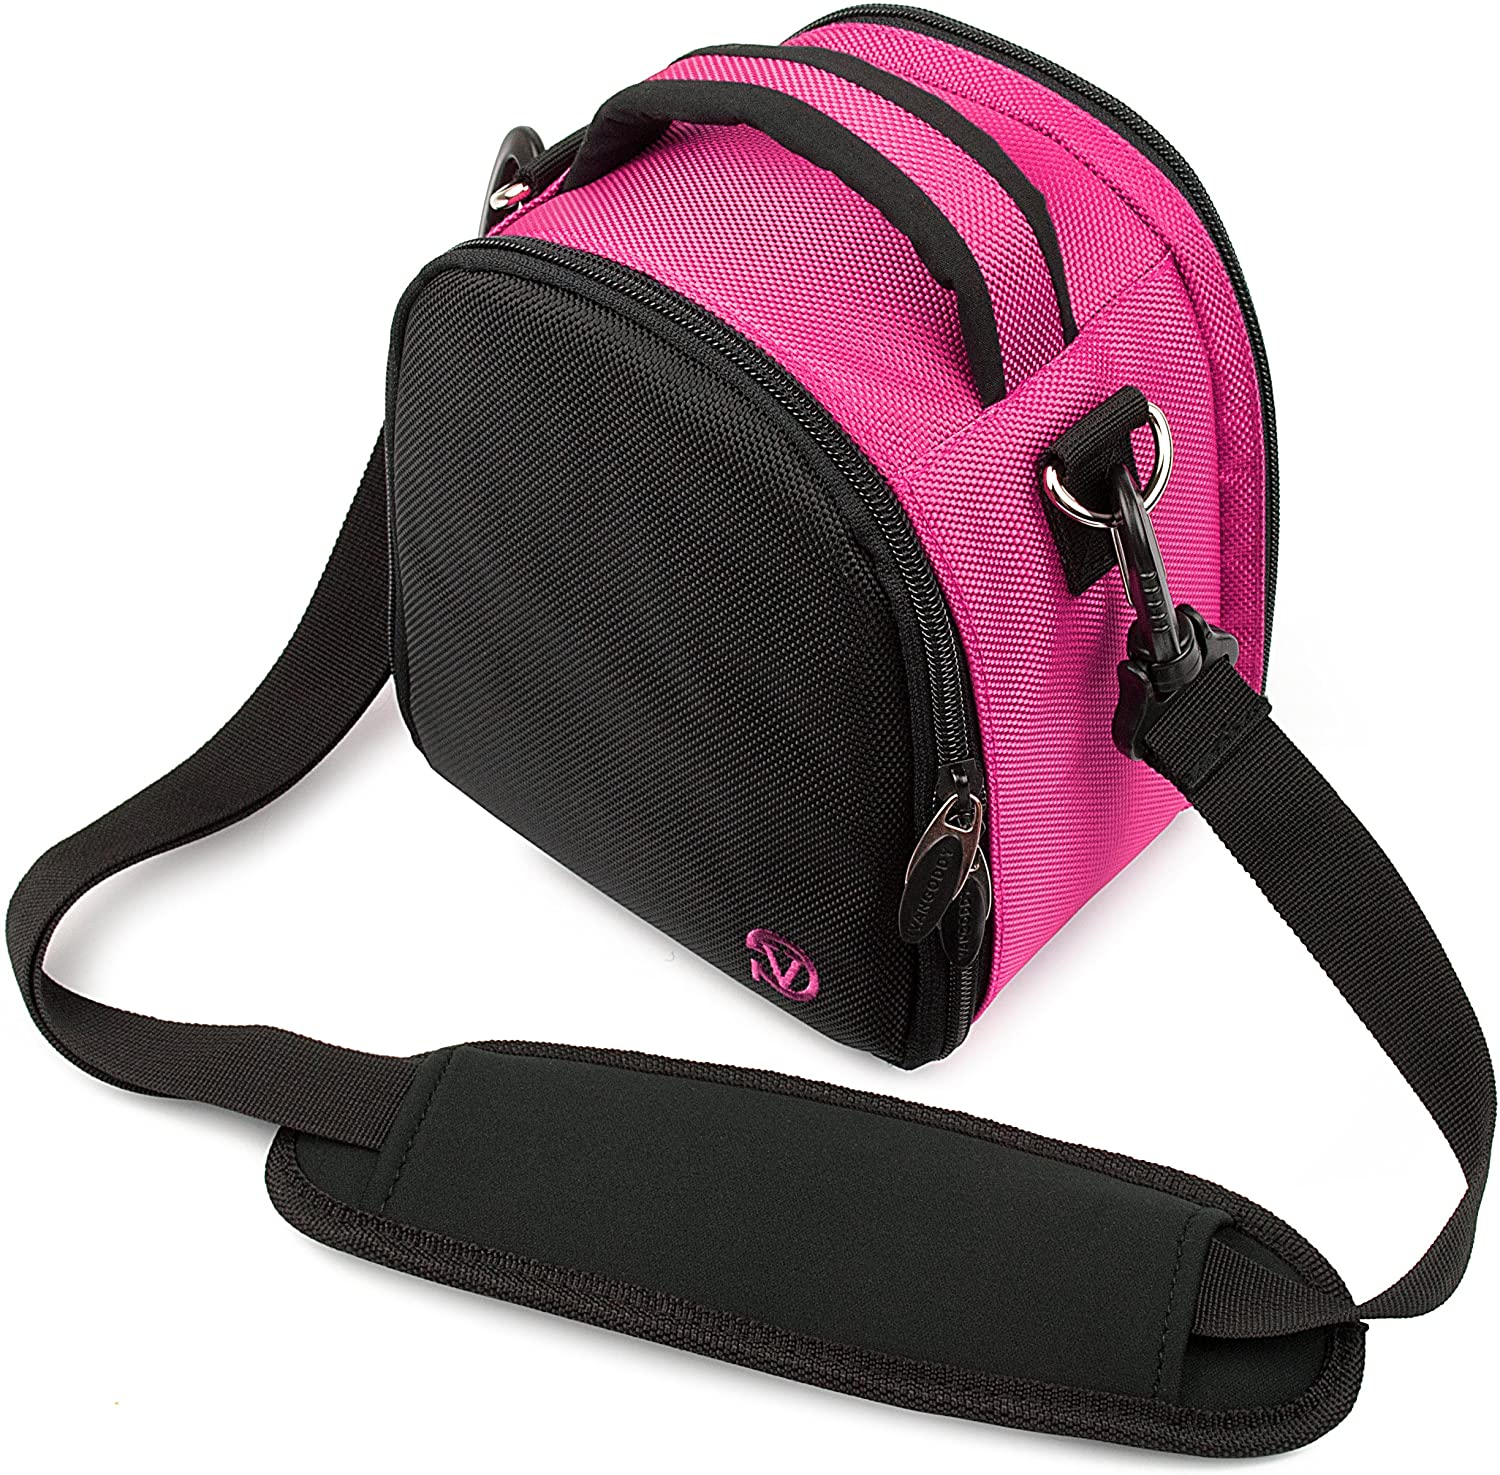 Ultralight Camera Case Hot Pink Bag with Attachable Strap for Ricoh WG M2 GR II WG 50 WG 5 GPS WG 30 Wi fi Theta V SC S m15